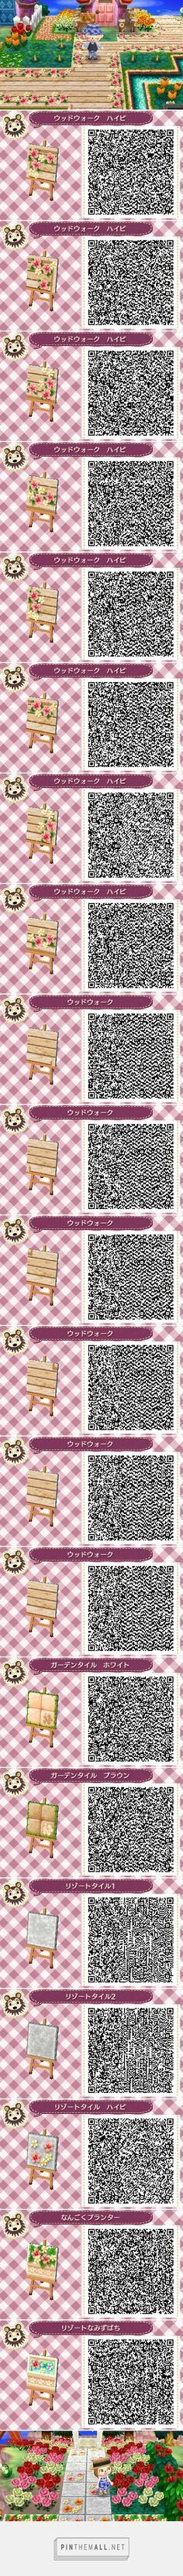 Garden White Stone Path Animal Crossing Qr Code Collection in Acnl Qr Cod., Spring Garden White Stone Path Animal Crossing Qr Code Collection in Acnl Qr Cod., Spring Garden White Stone Path Animal Crossing Qr Code Collection in Acnl Qr Cod. Animal Crossing Qr Codes Clothes, Animal Crossing Game, Animal Games, My Animal, Acnl Pfade, Hibiscus, Acnl Paths, Wooden Path, Motif Acnl